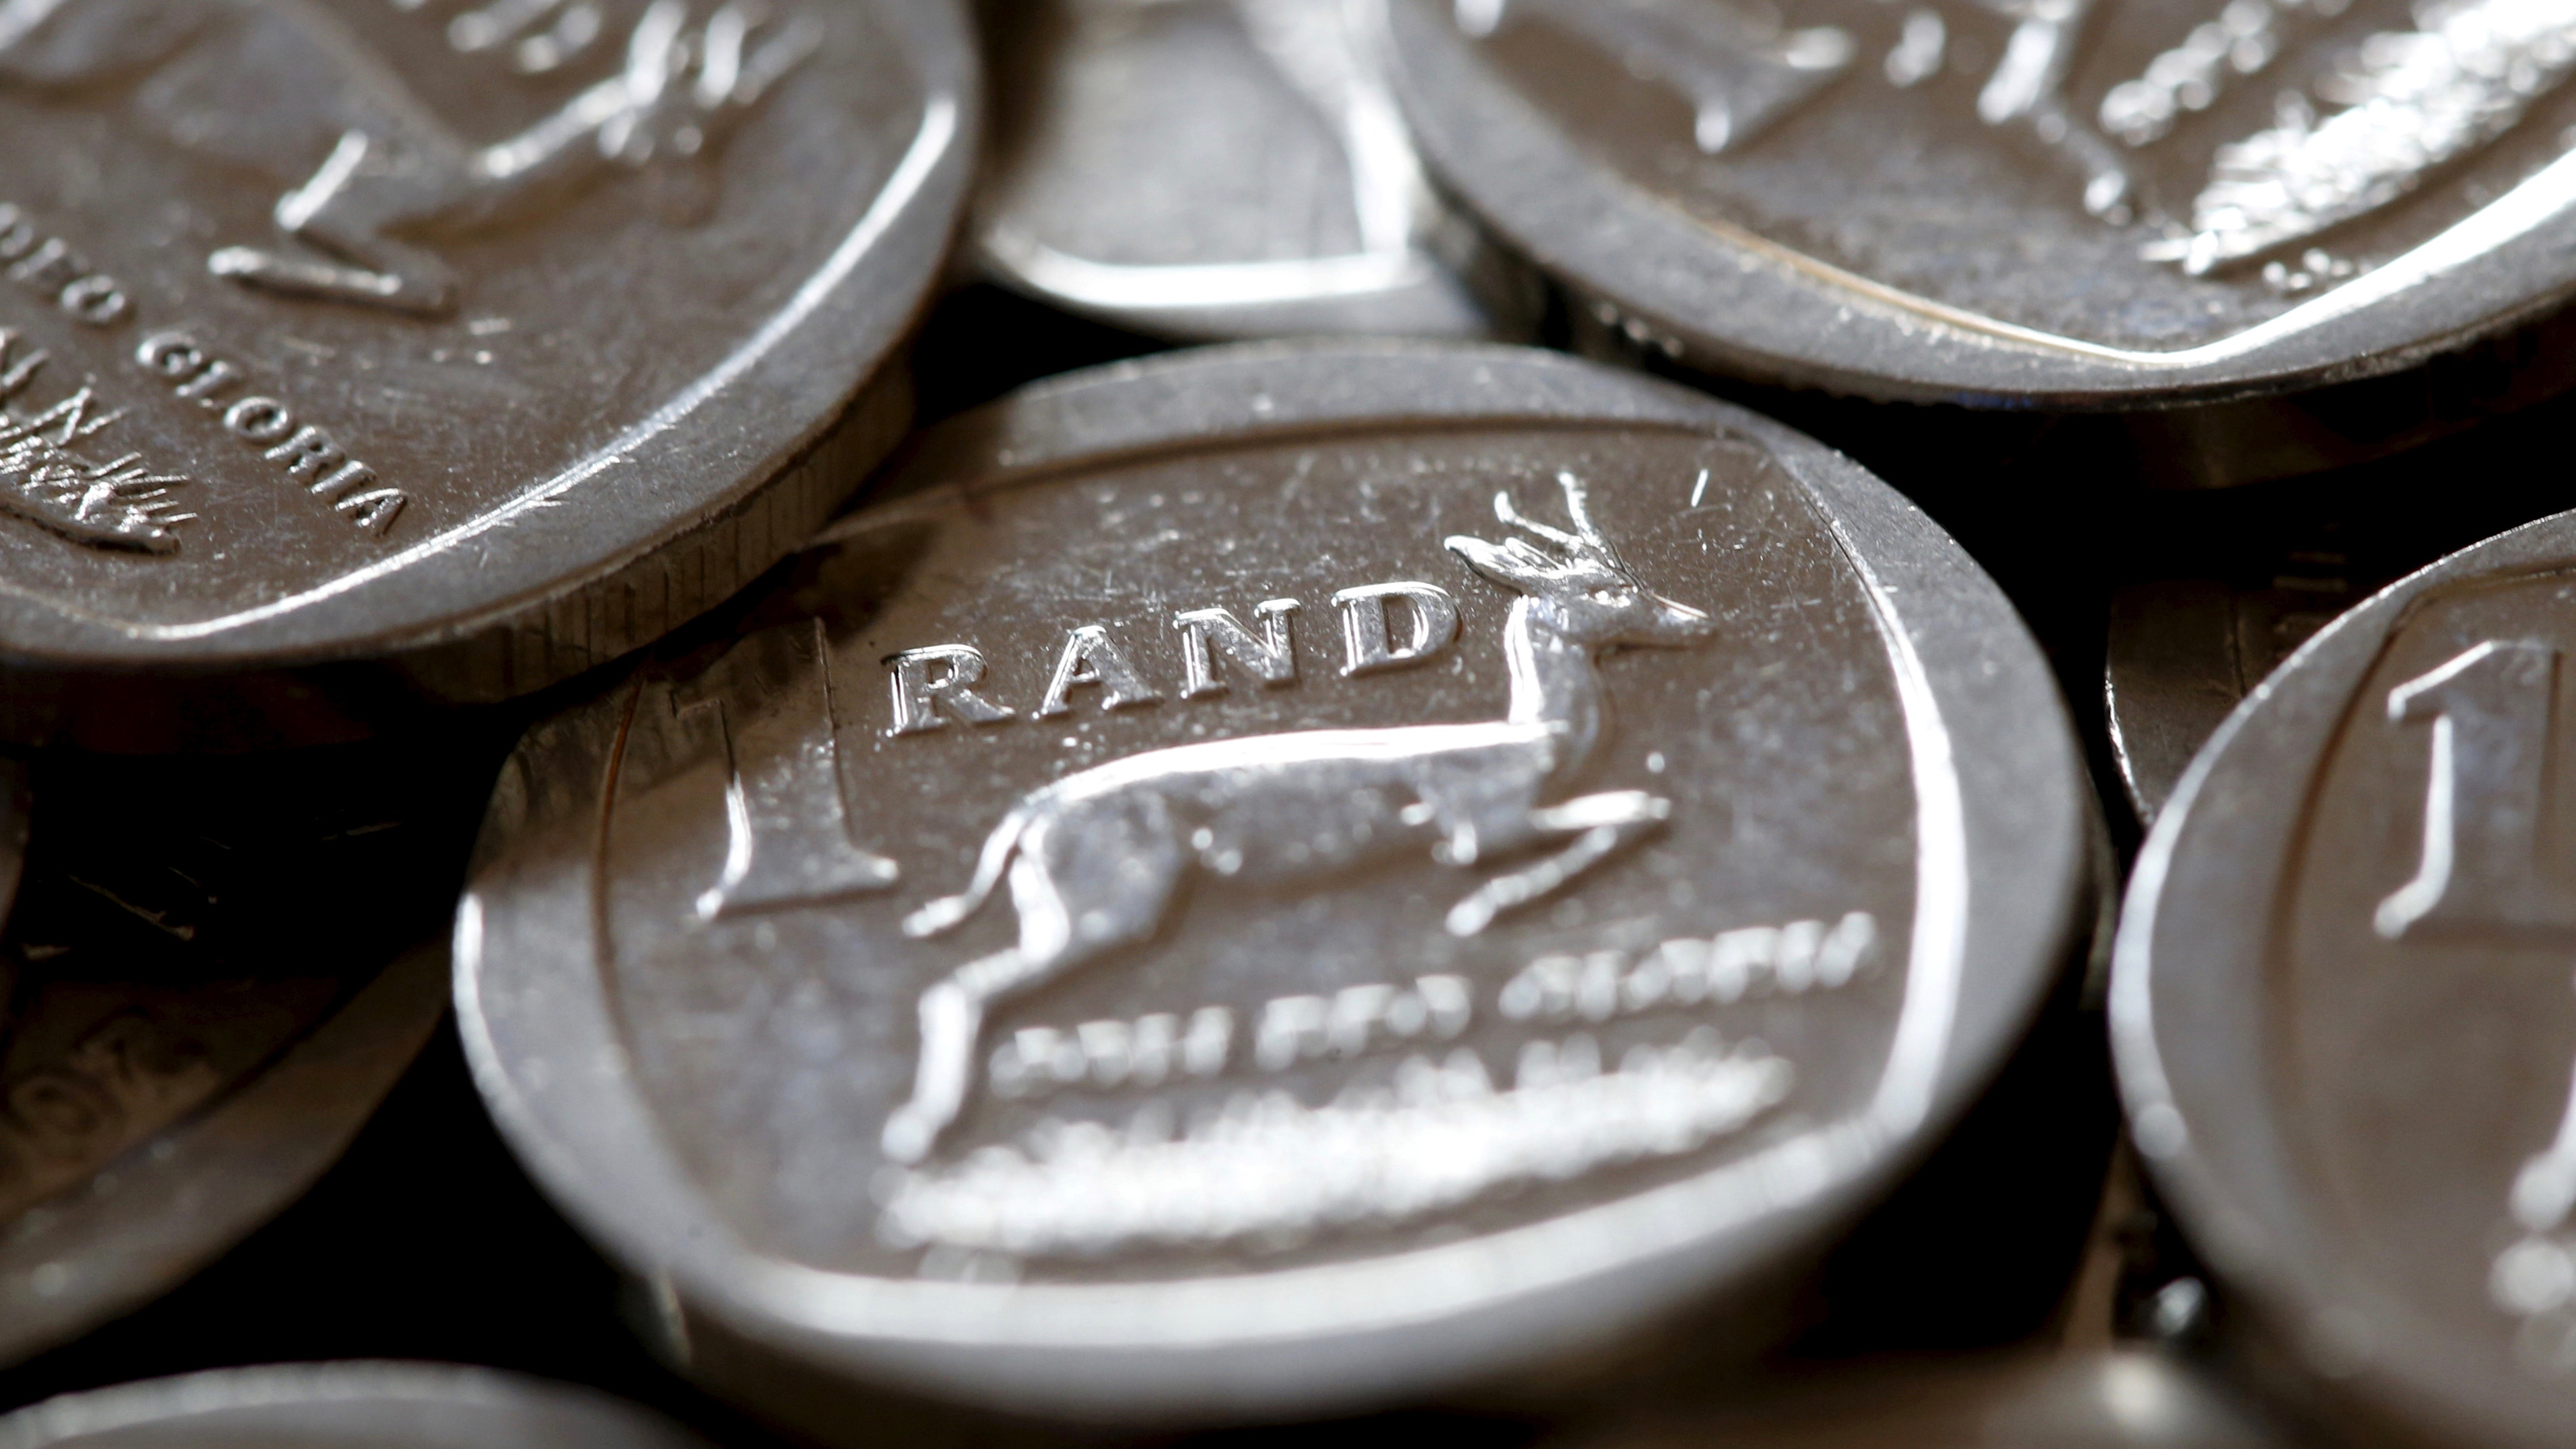 Banks Were Colluding On Forex Deals While South Africans Fretted About A Volatile Rand